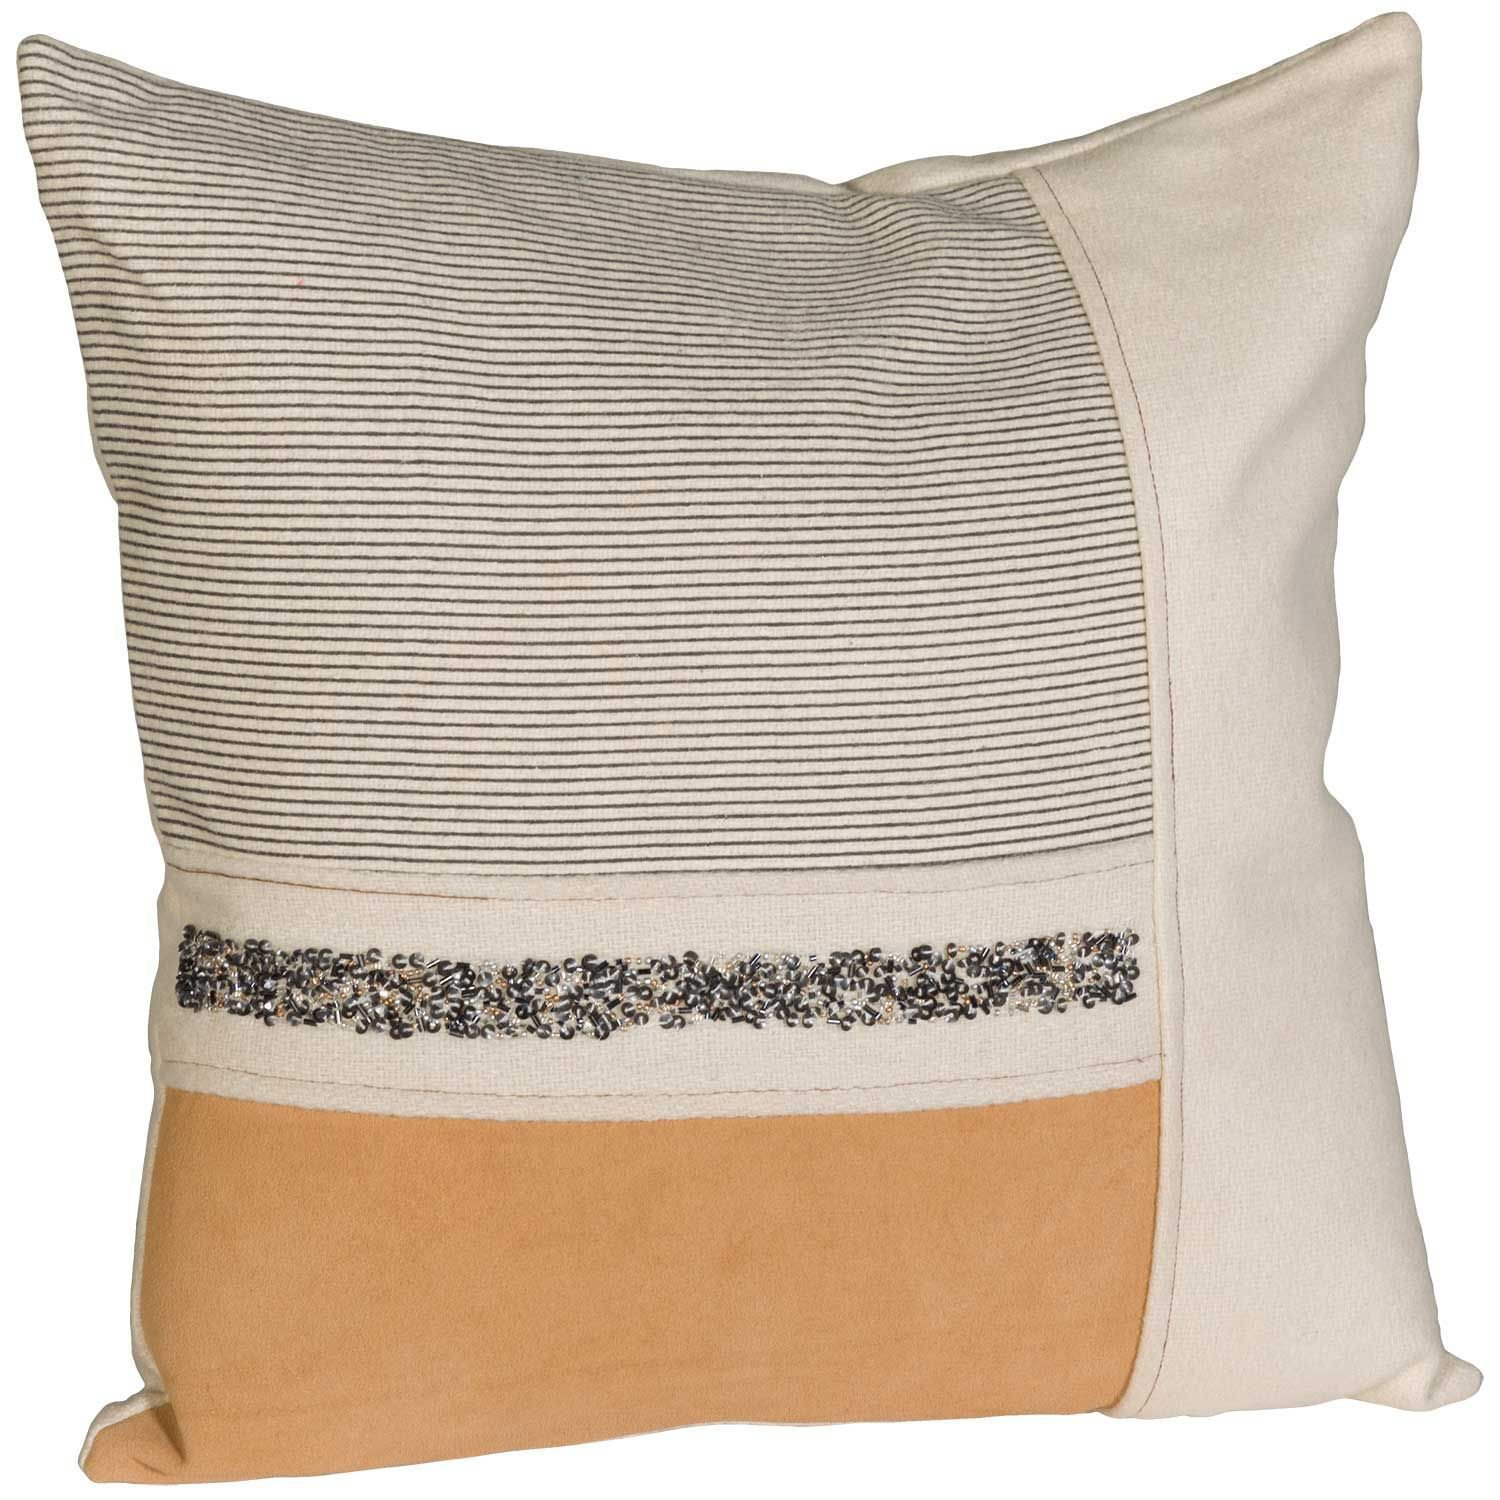 Picture of Mod Pillow 20x20 Inch